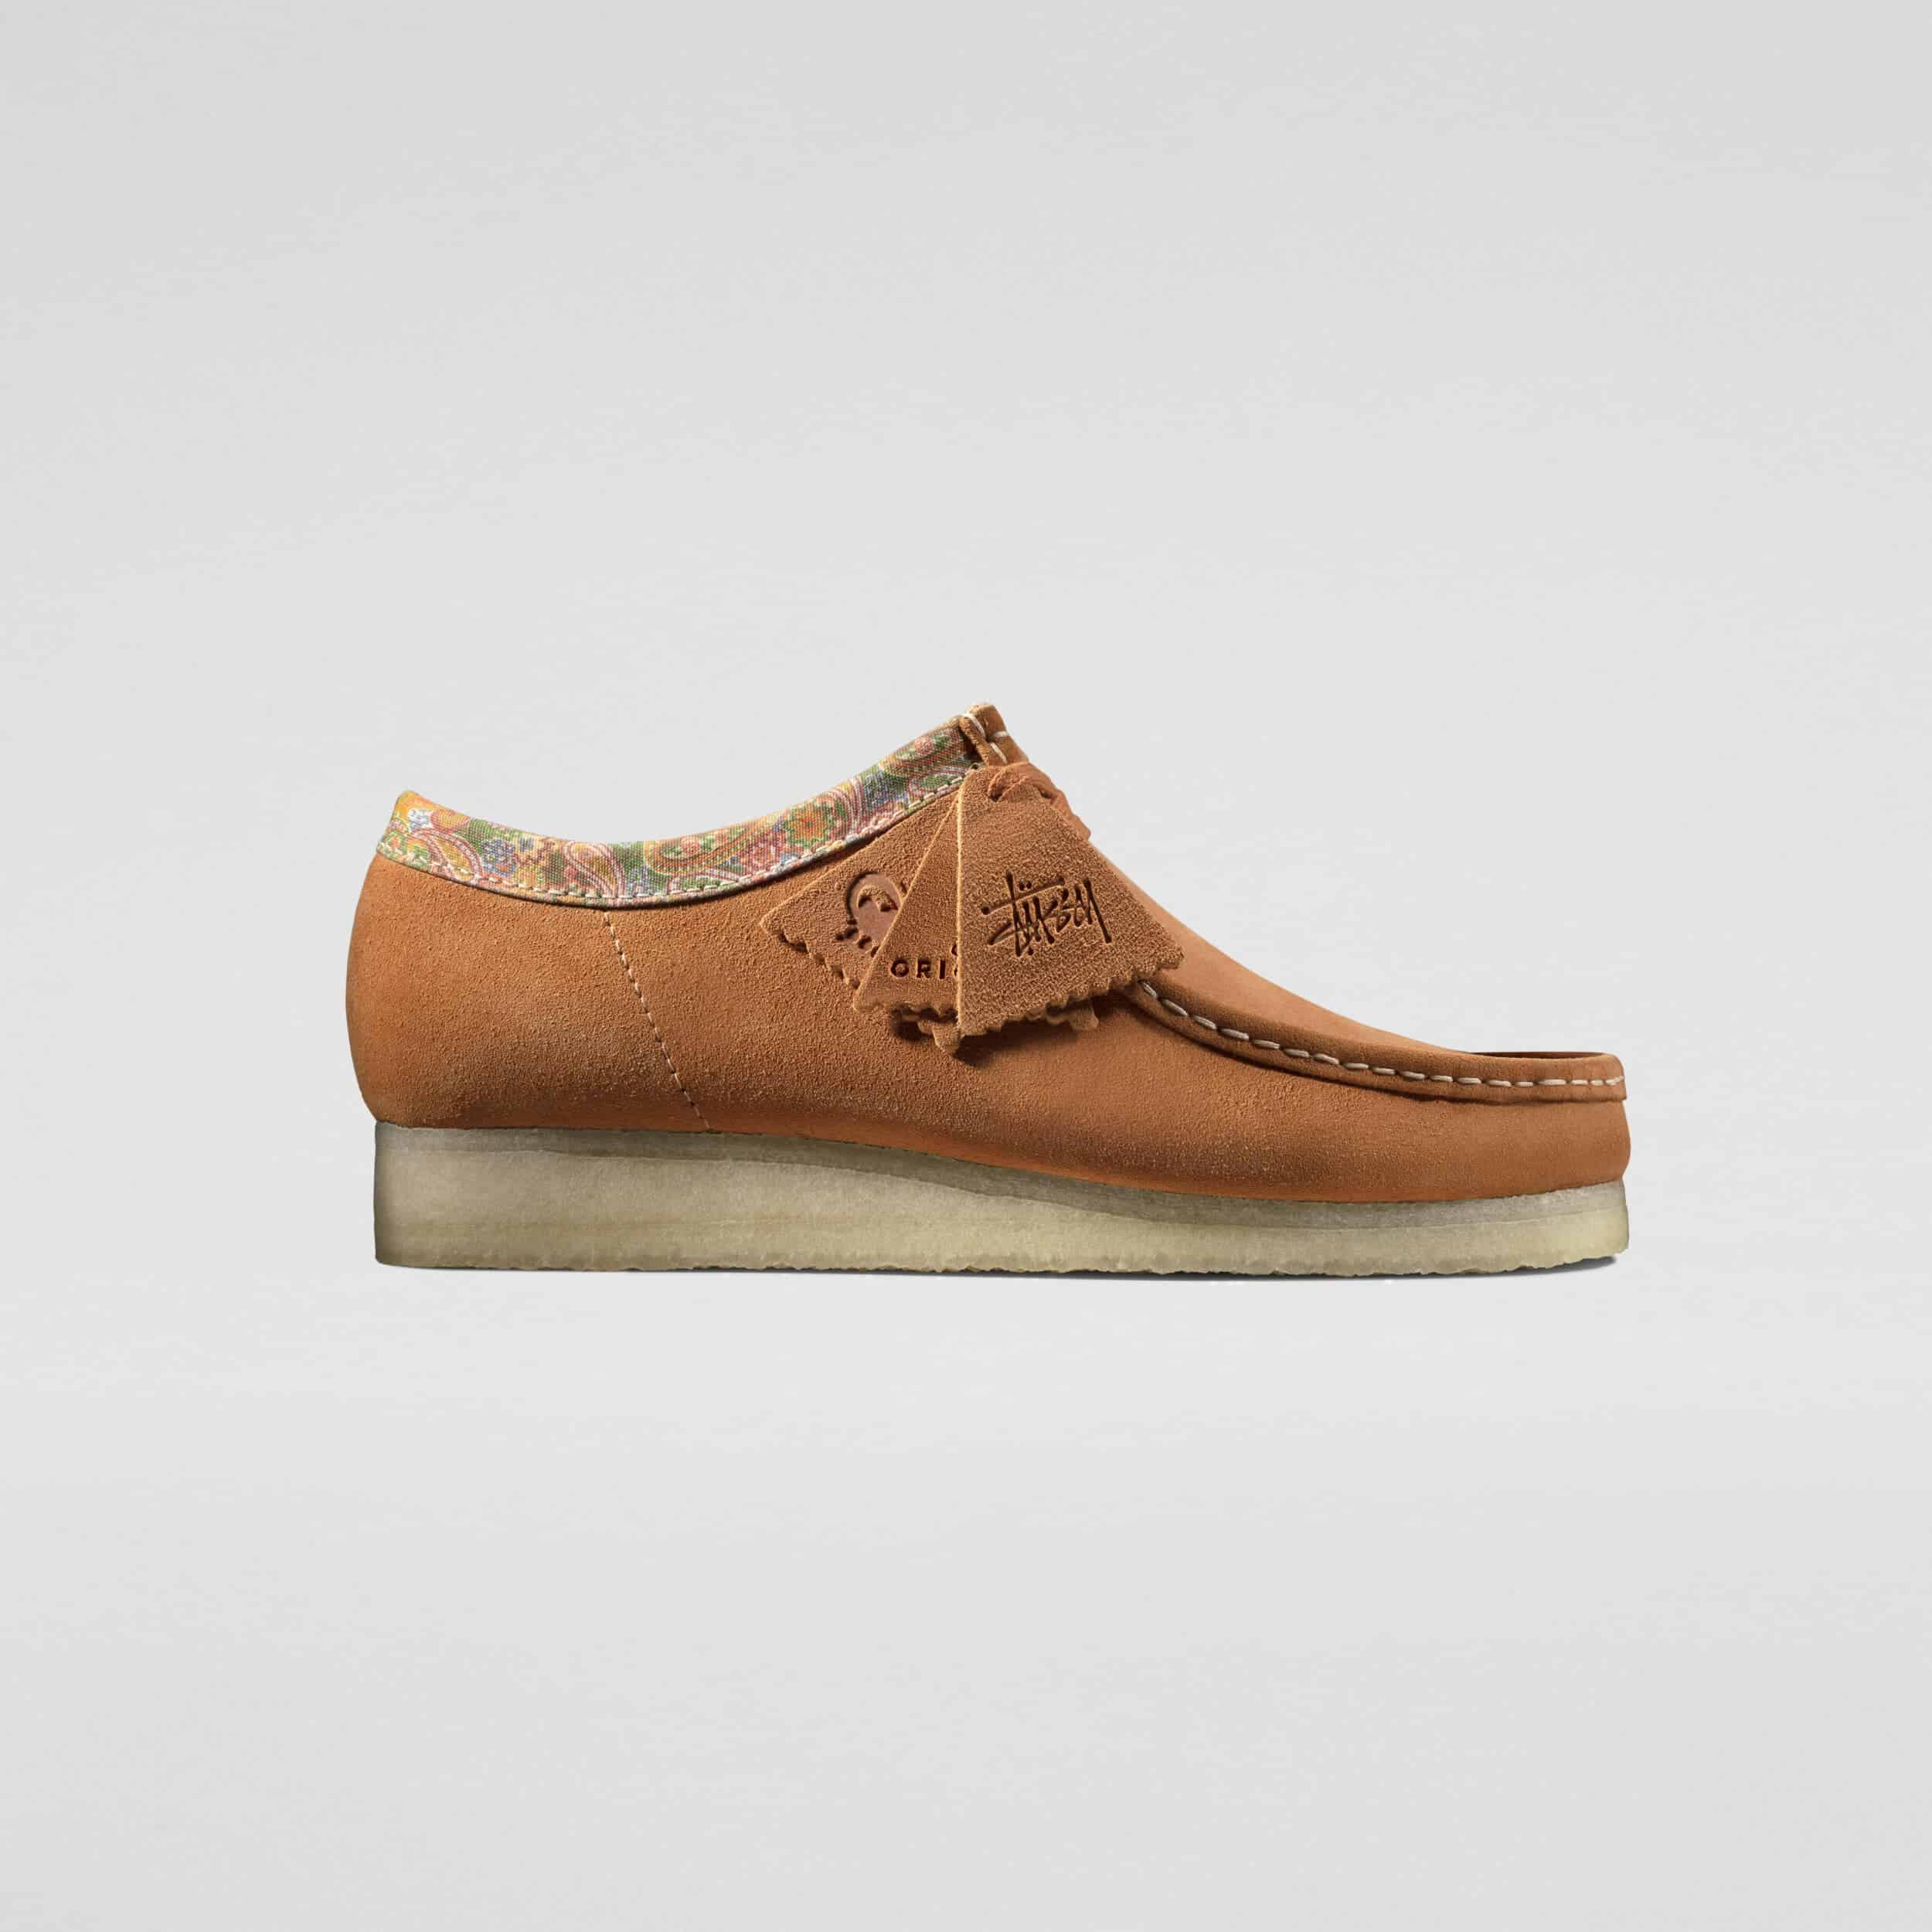 Stussy x Clarks Originals - Wallabee